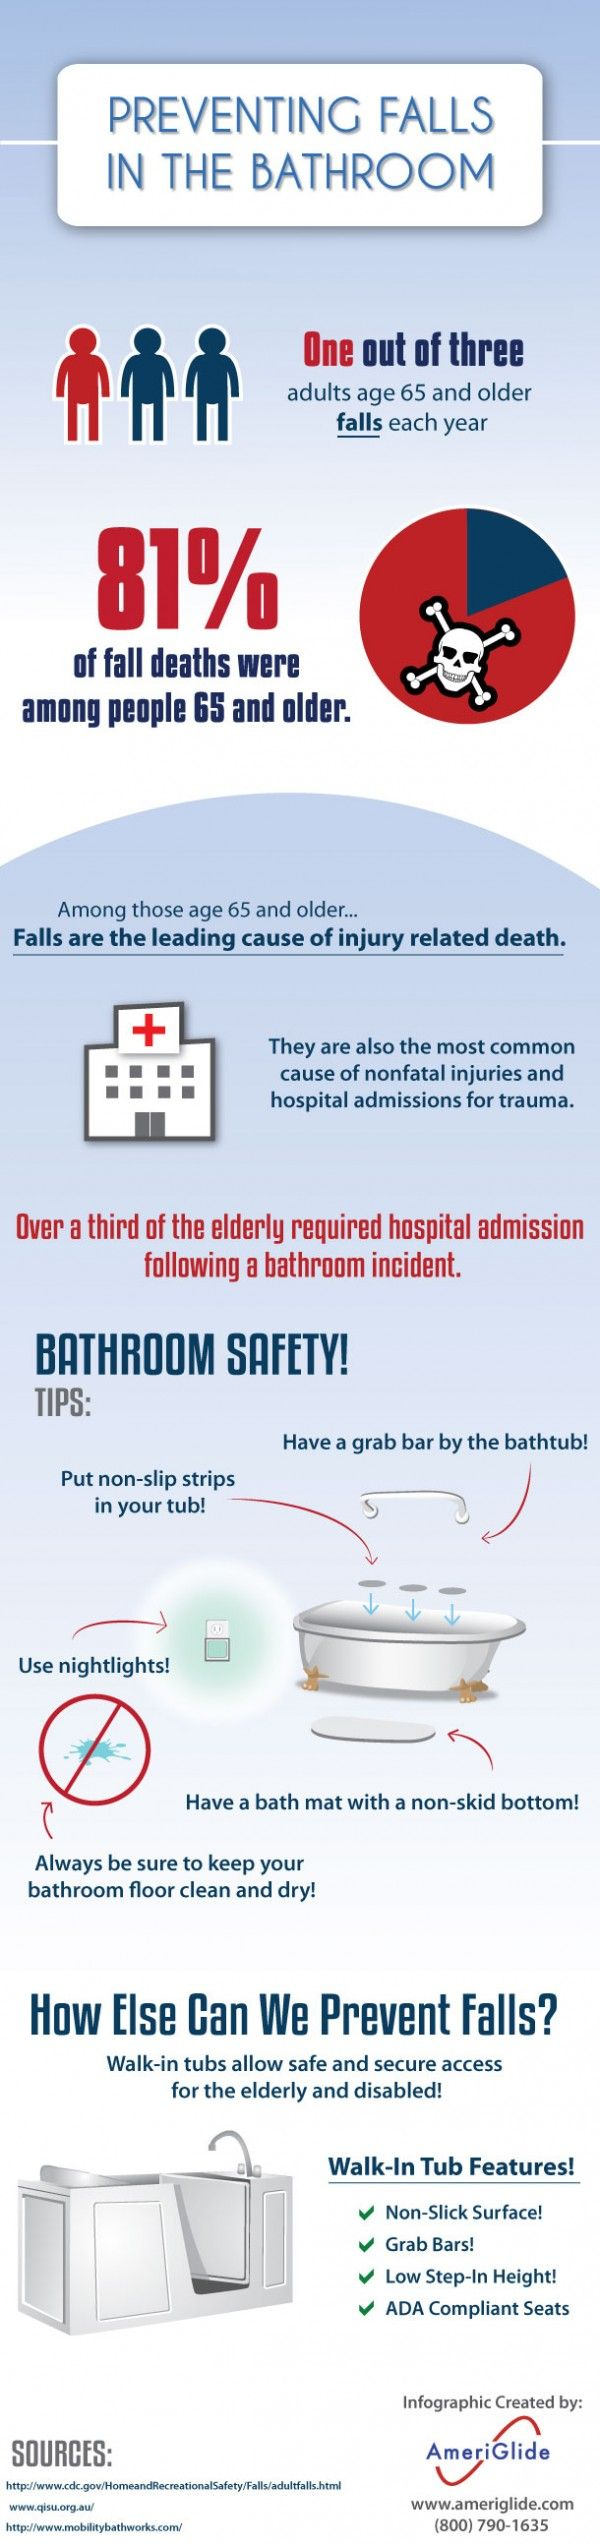 Fantastic visual! - Prevent Falling In The Bathroom #aging #seniors #elderly.  Take a look at our Care and repair website which can give information about how to get adaptations to make your home safer!